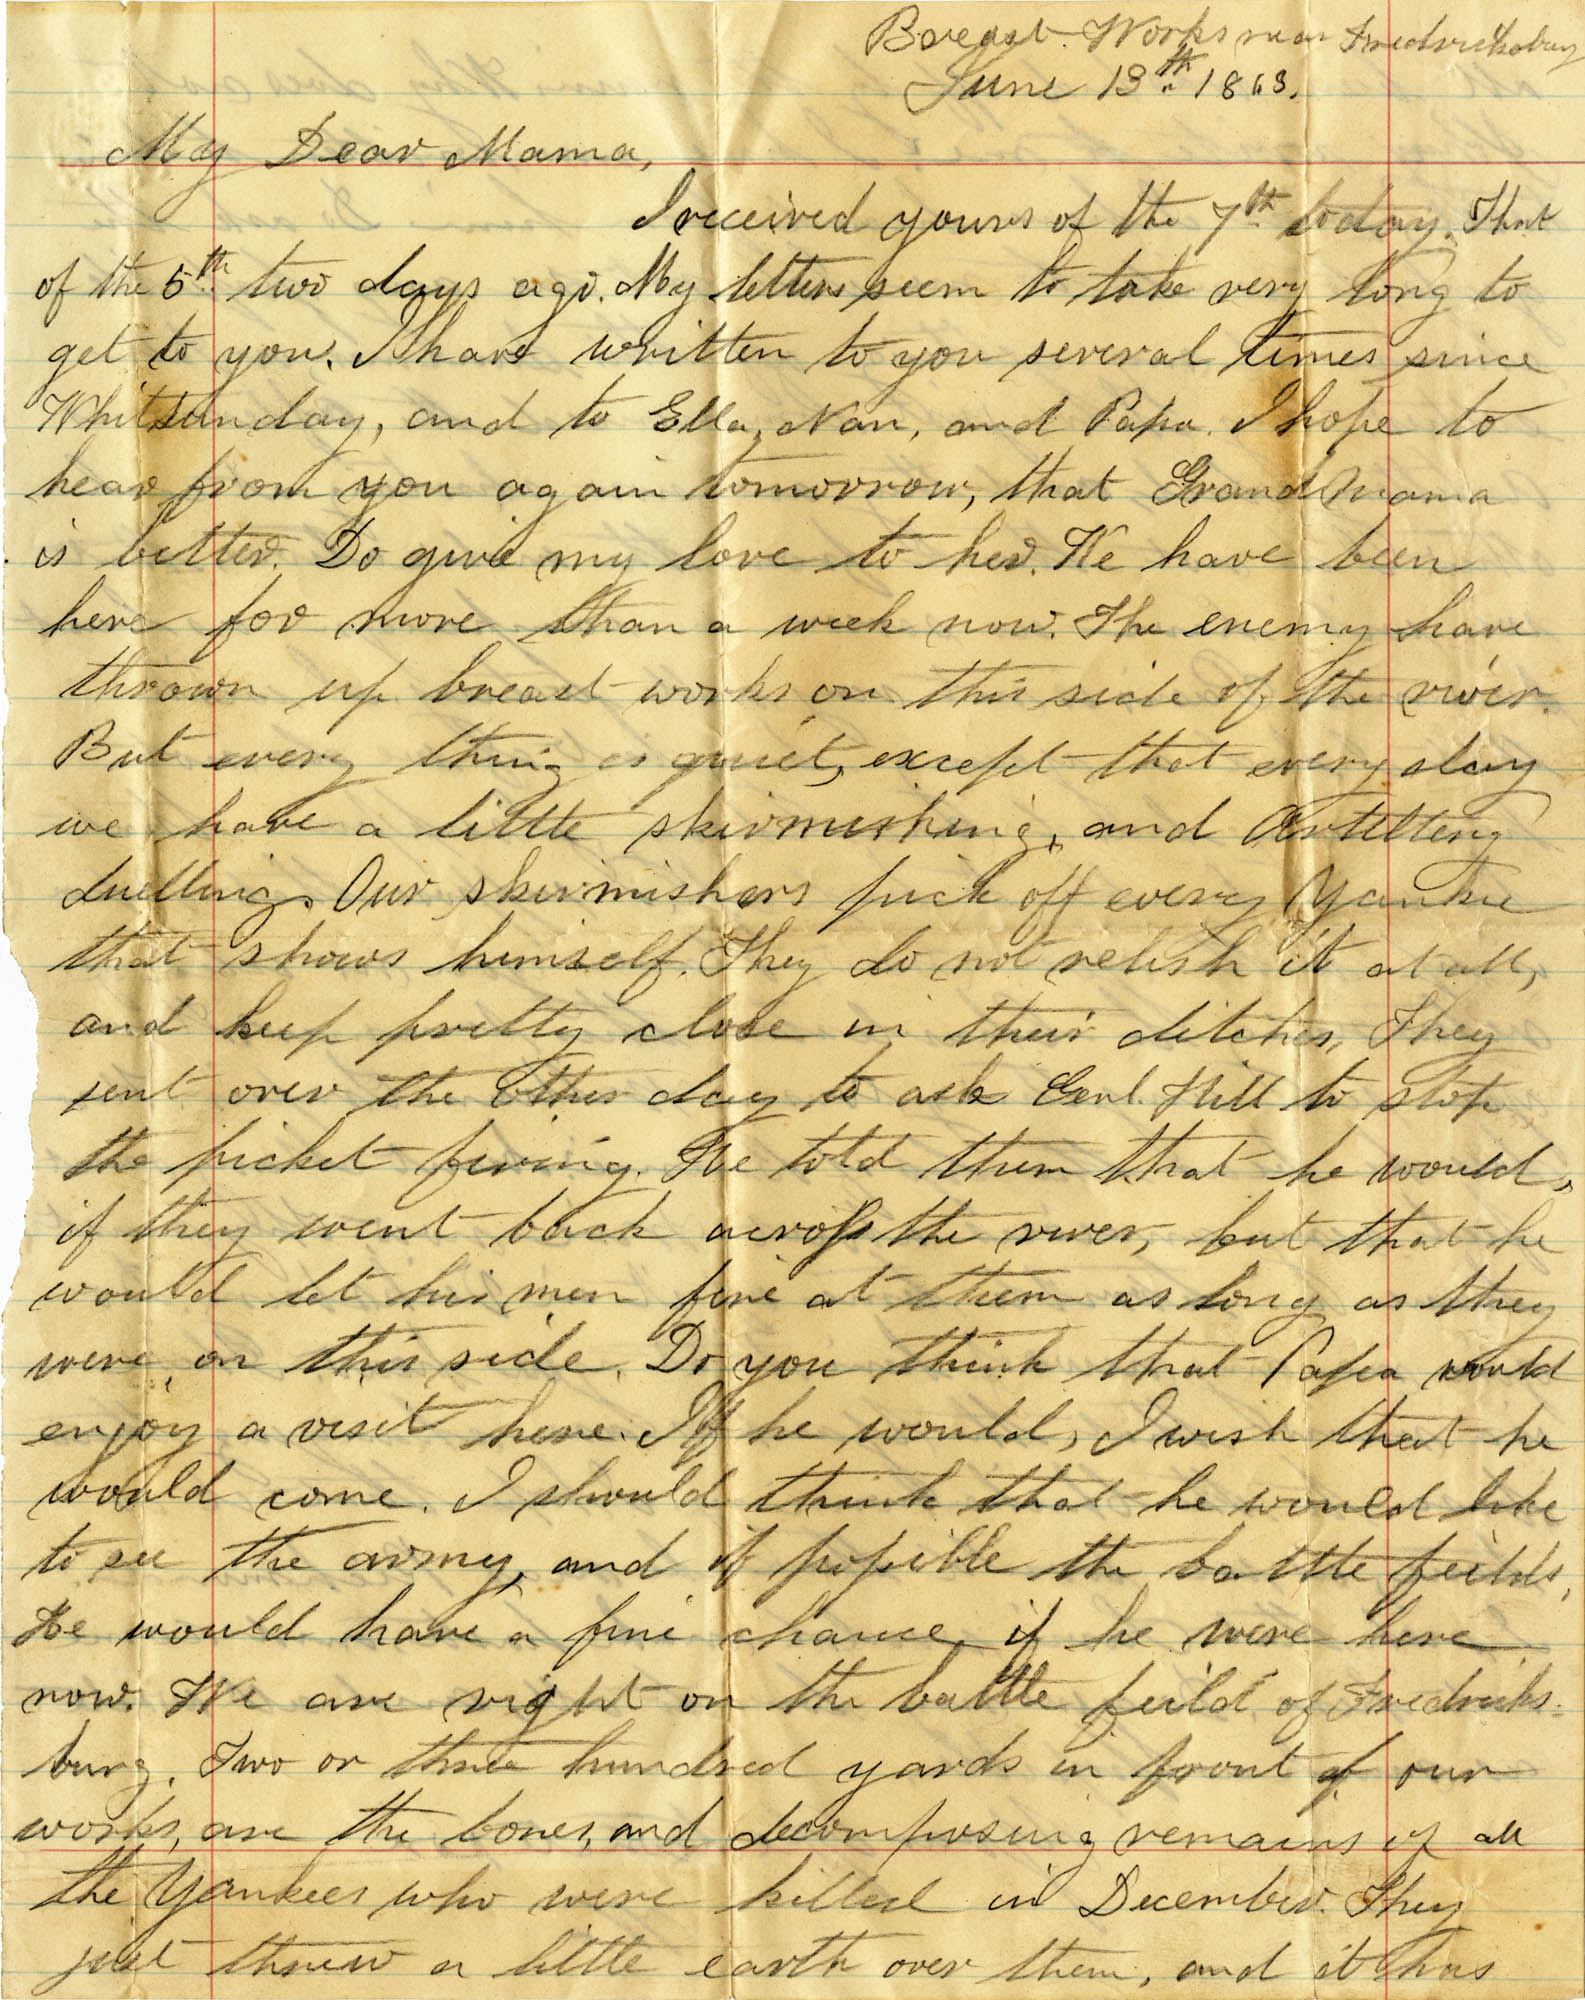 085. Willis Keith to Anna Bell Keith -- June 13, 1863